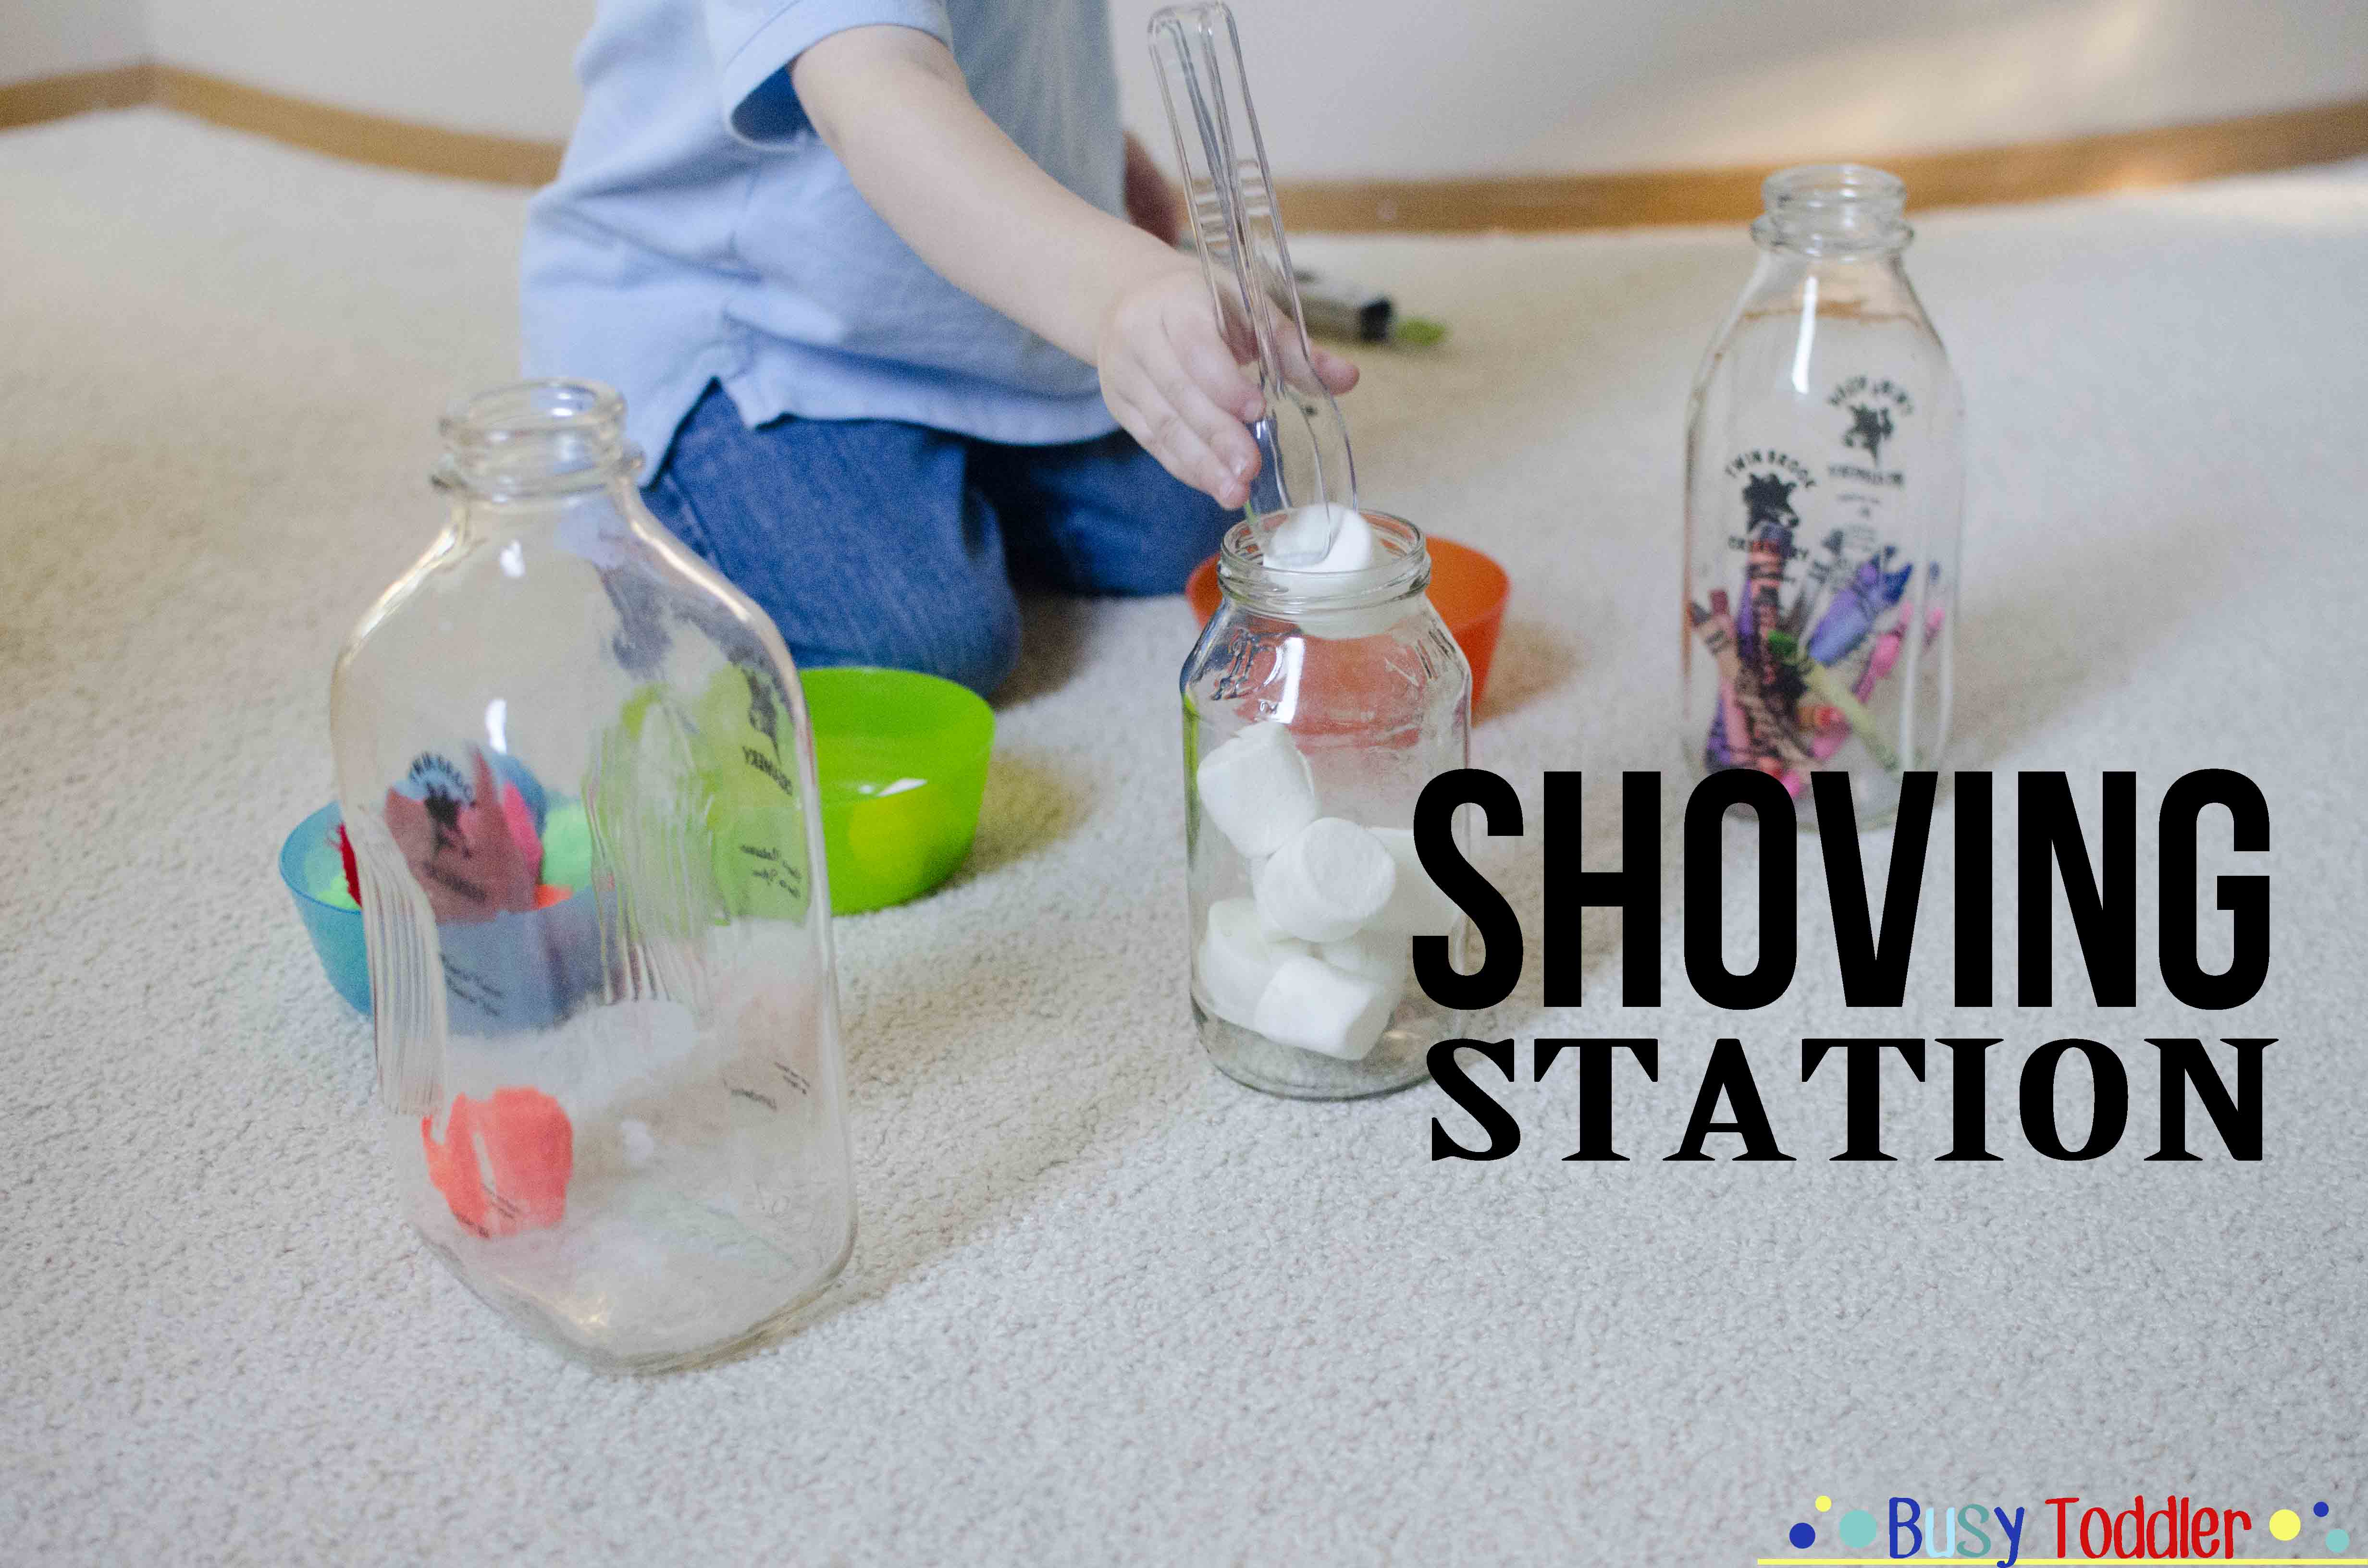 Shoving Station